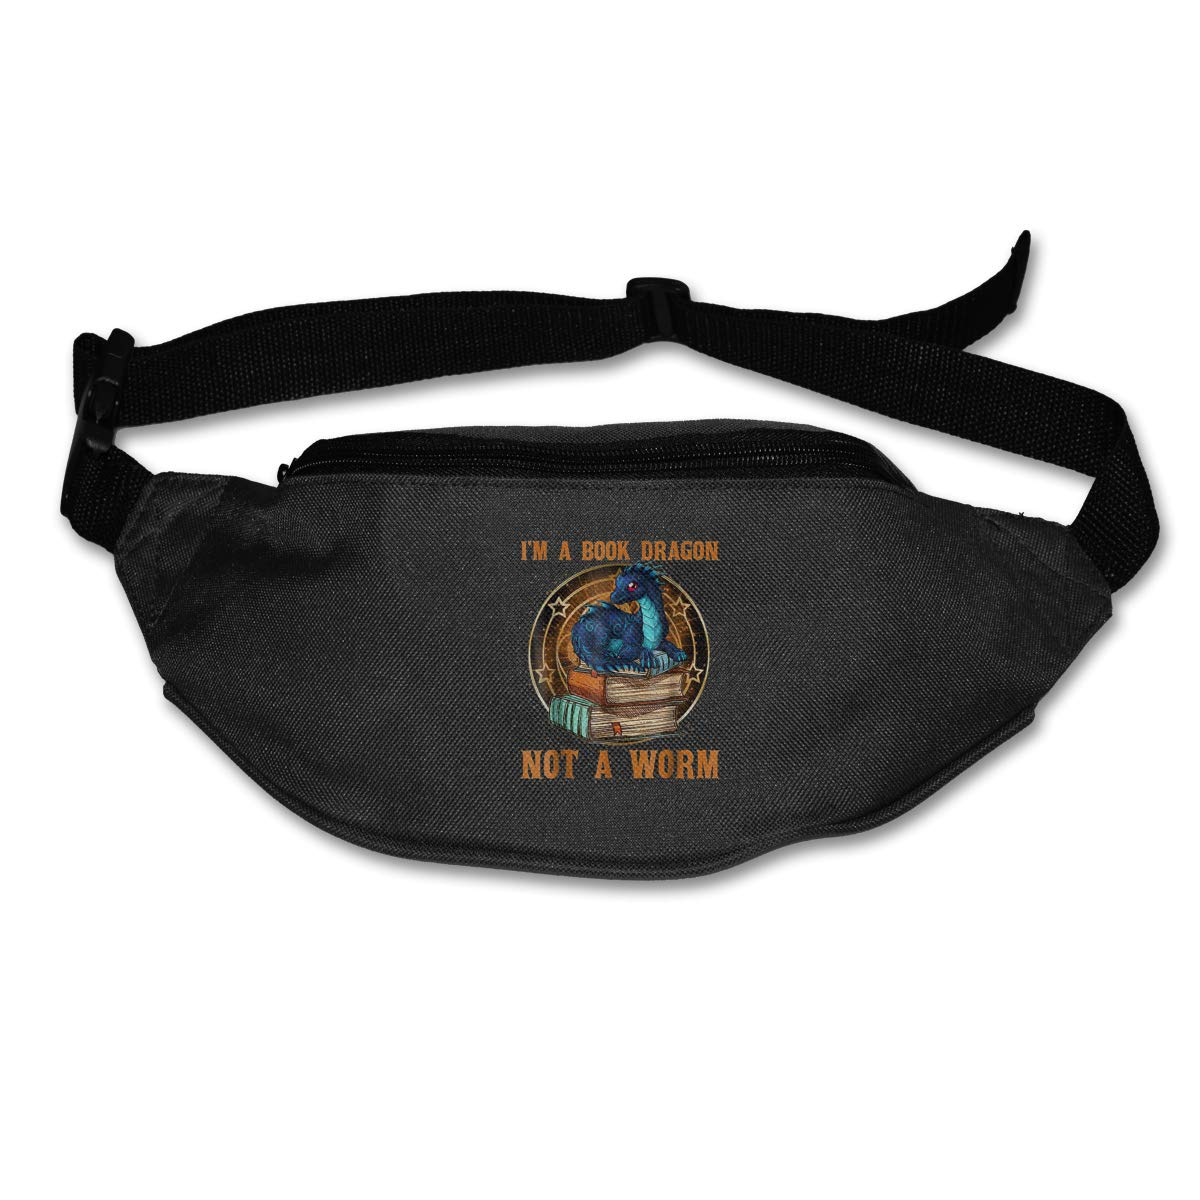 I Am Book Dragon Not A Worm Sport Waist Bag Fanny Pack Adjustable For Travel